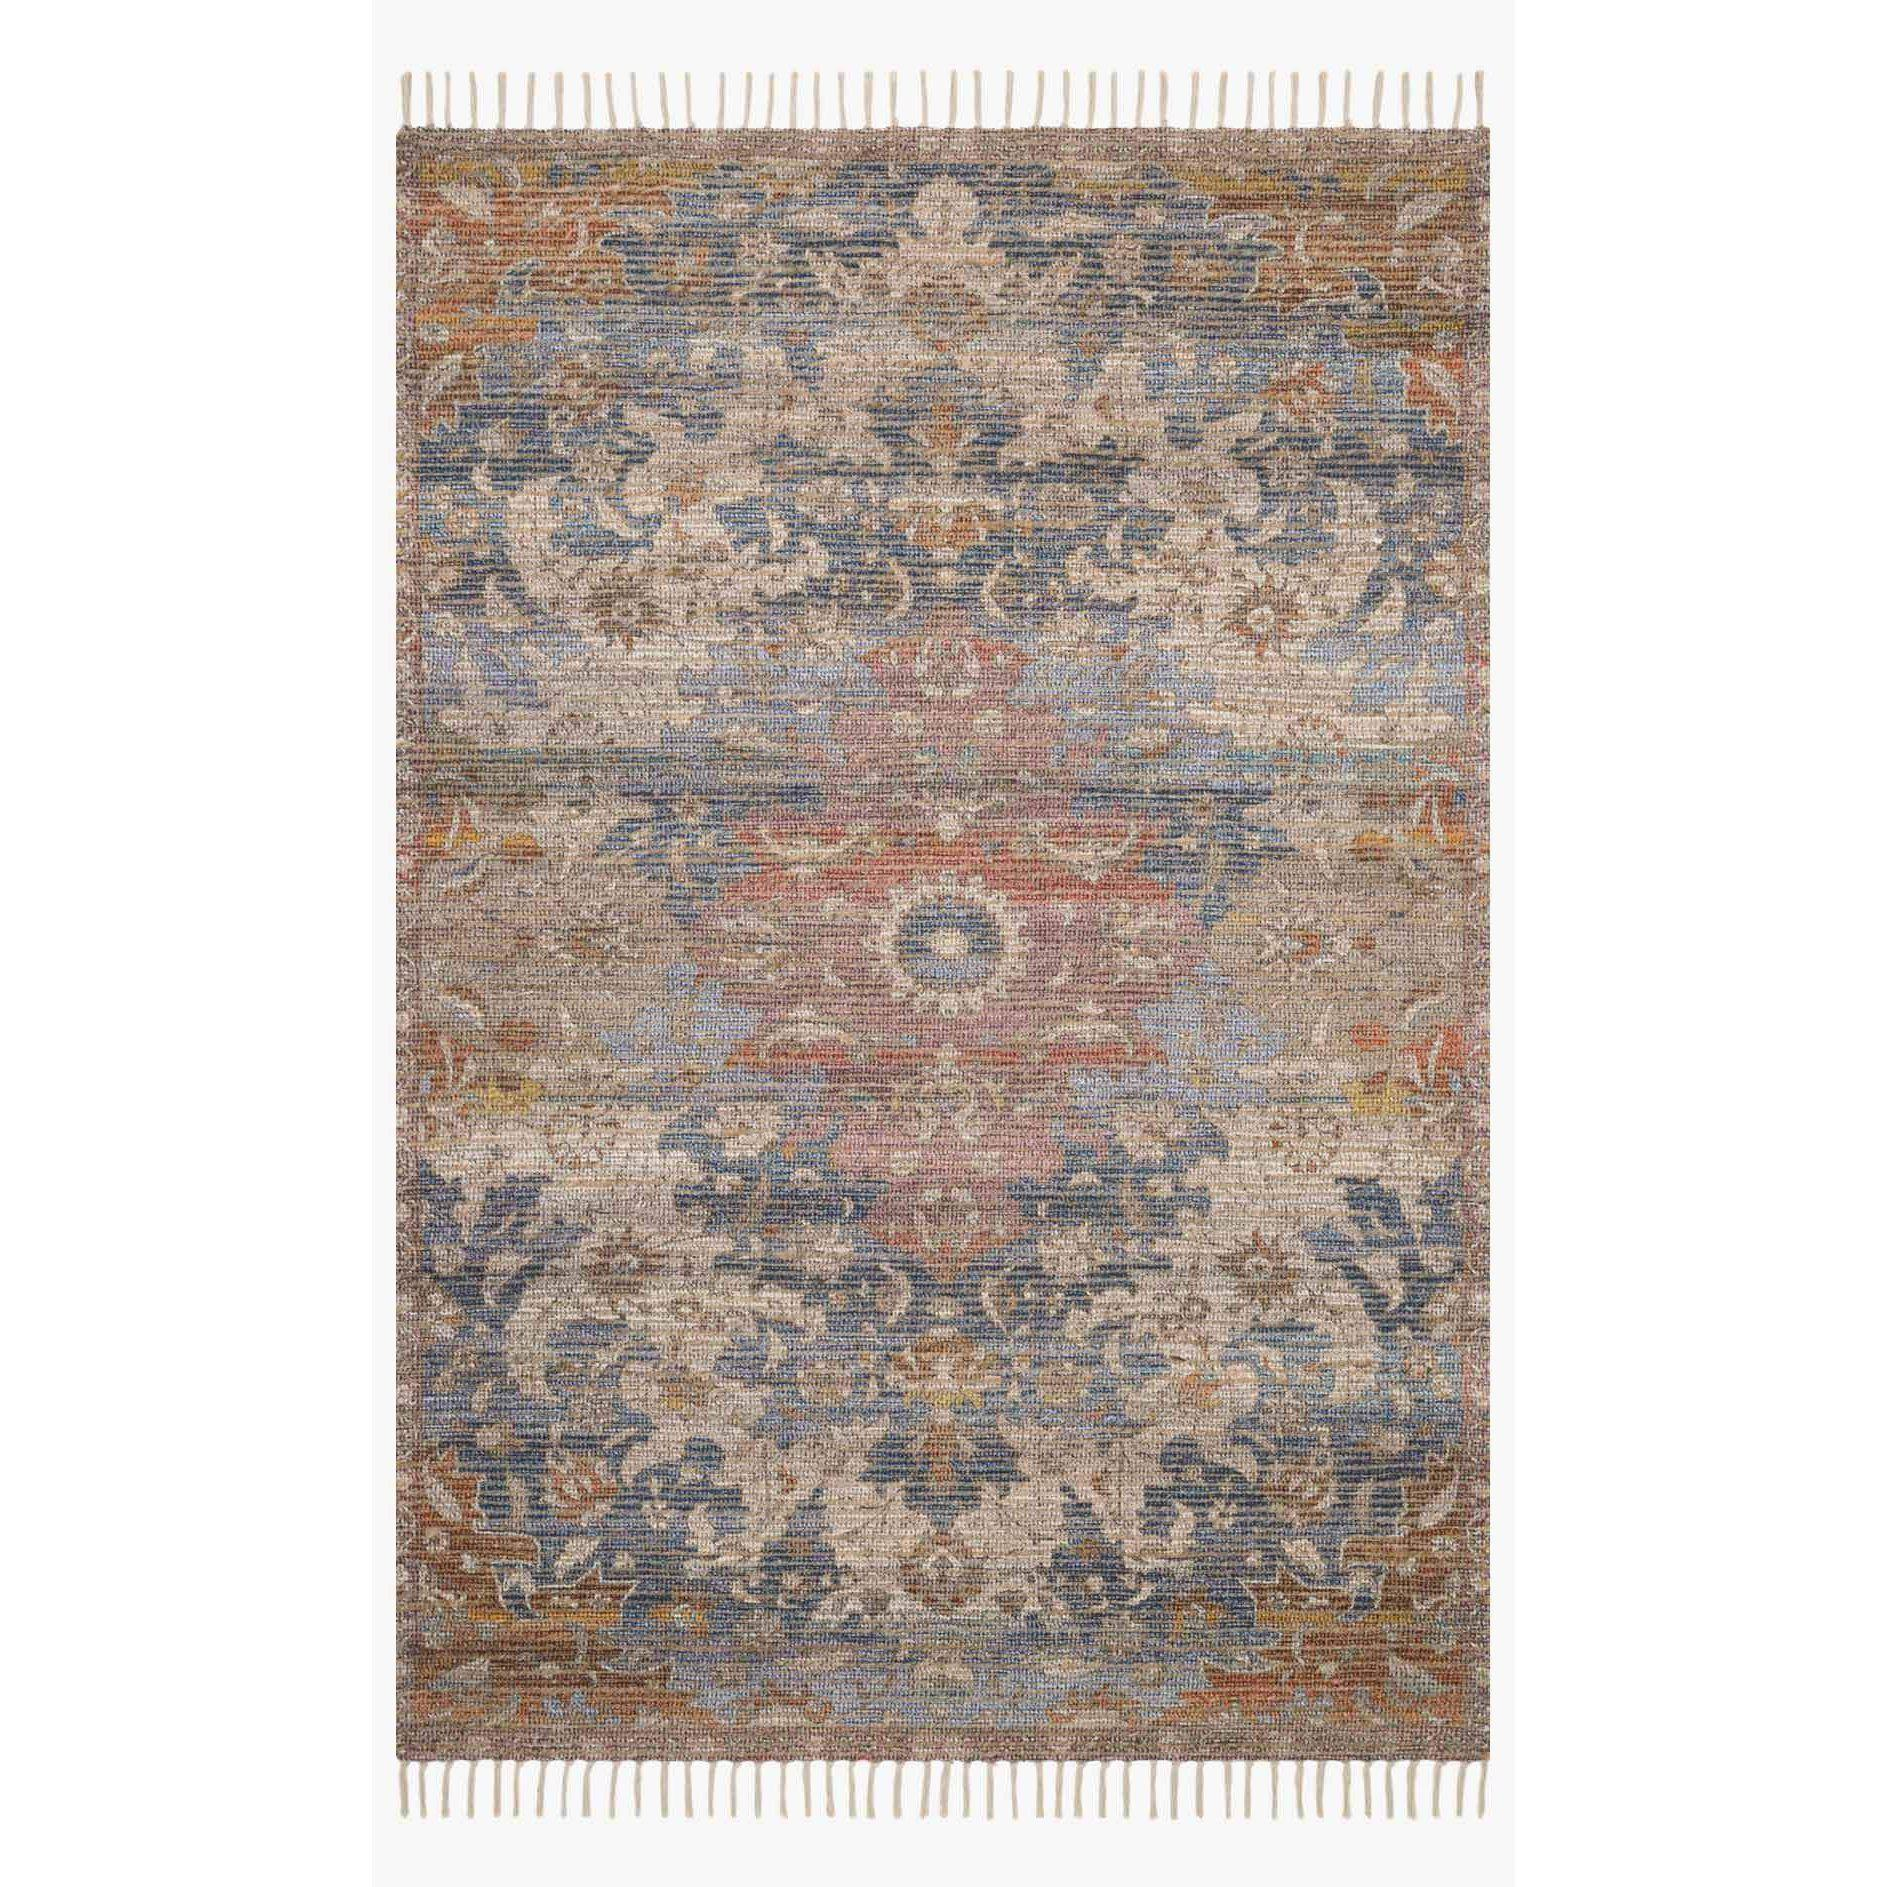 Justina Blakeney Rugs - Cornelia - Cor-06 Denim/Multi-Loloi Rugs-Blue Hand Home